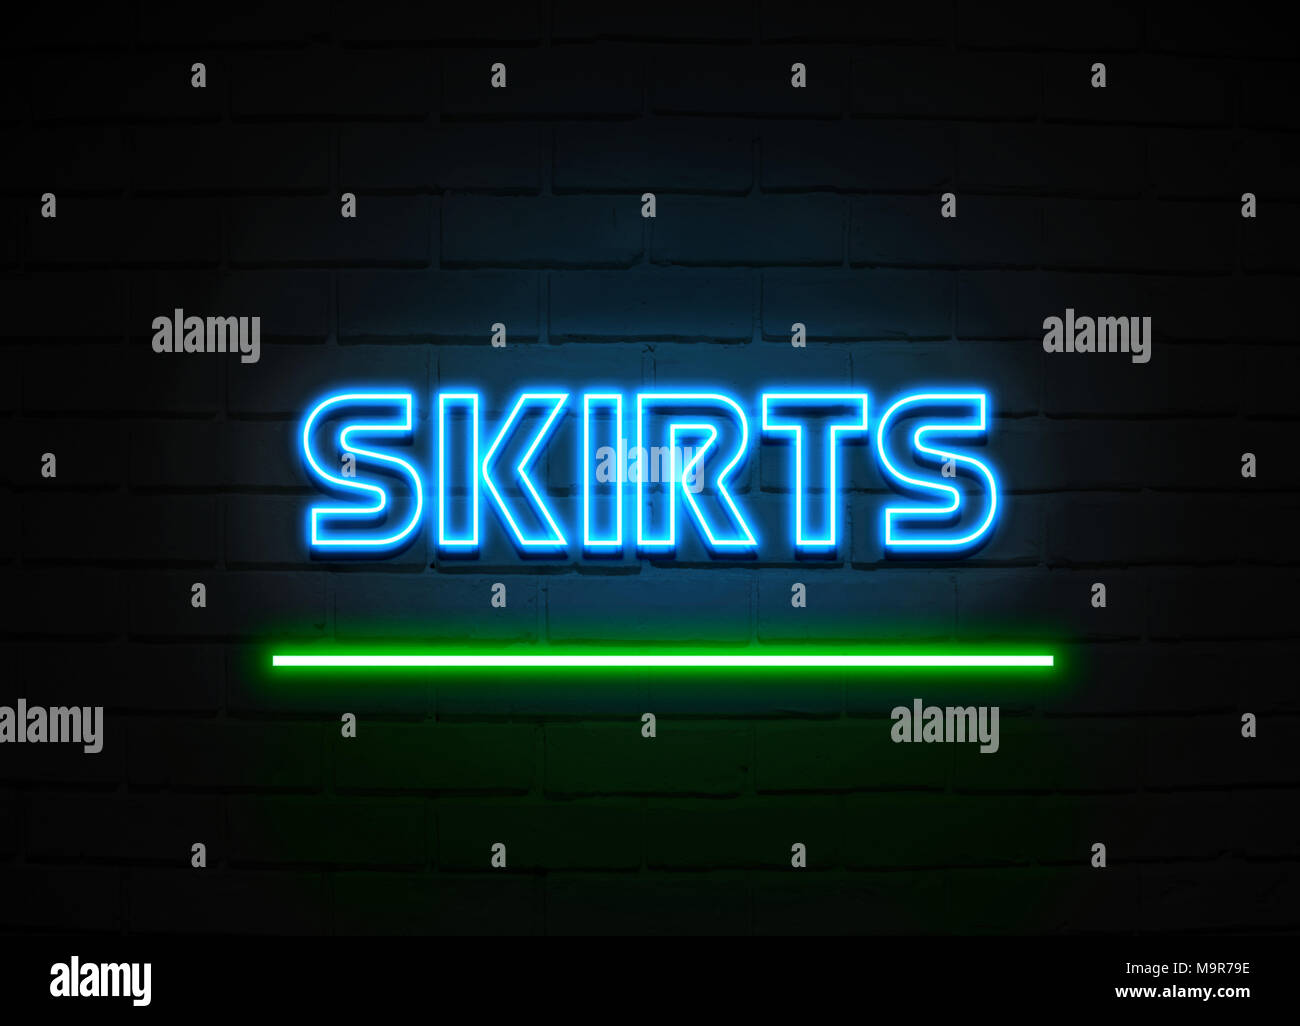 Skirts neon sign - Glowing Neon Sign on brickwall wall - 3D rendered royalty free stock illustration. - Stock Image